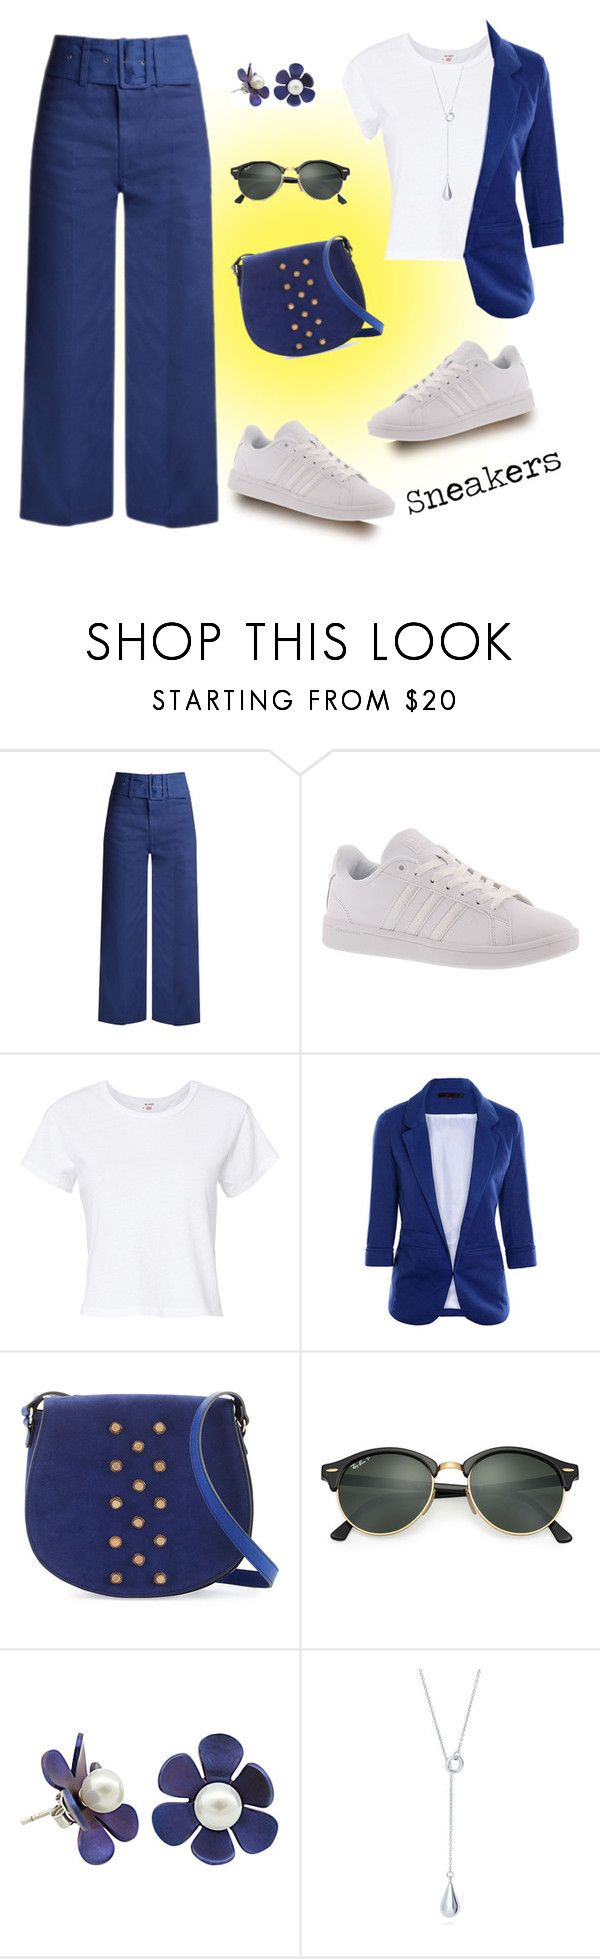 """Make it Look Easy ..."" by krusie ❤ liked on Polyvore featuring Sea, New York, adidas, RE/DONE, Neiman Marcus and Ray-Ban"